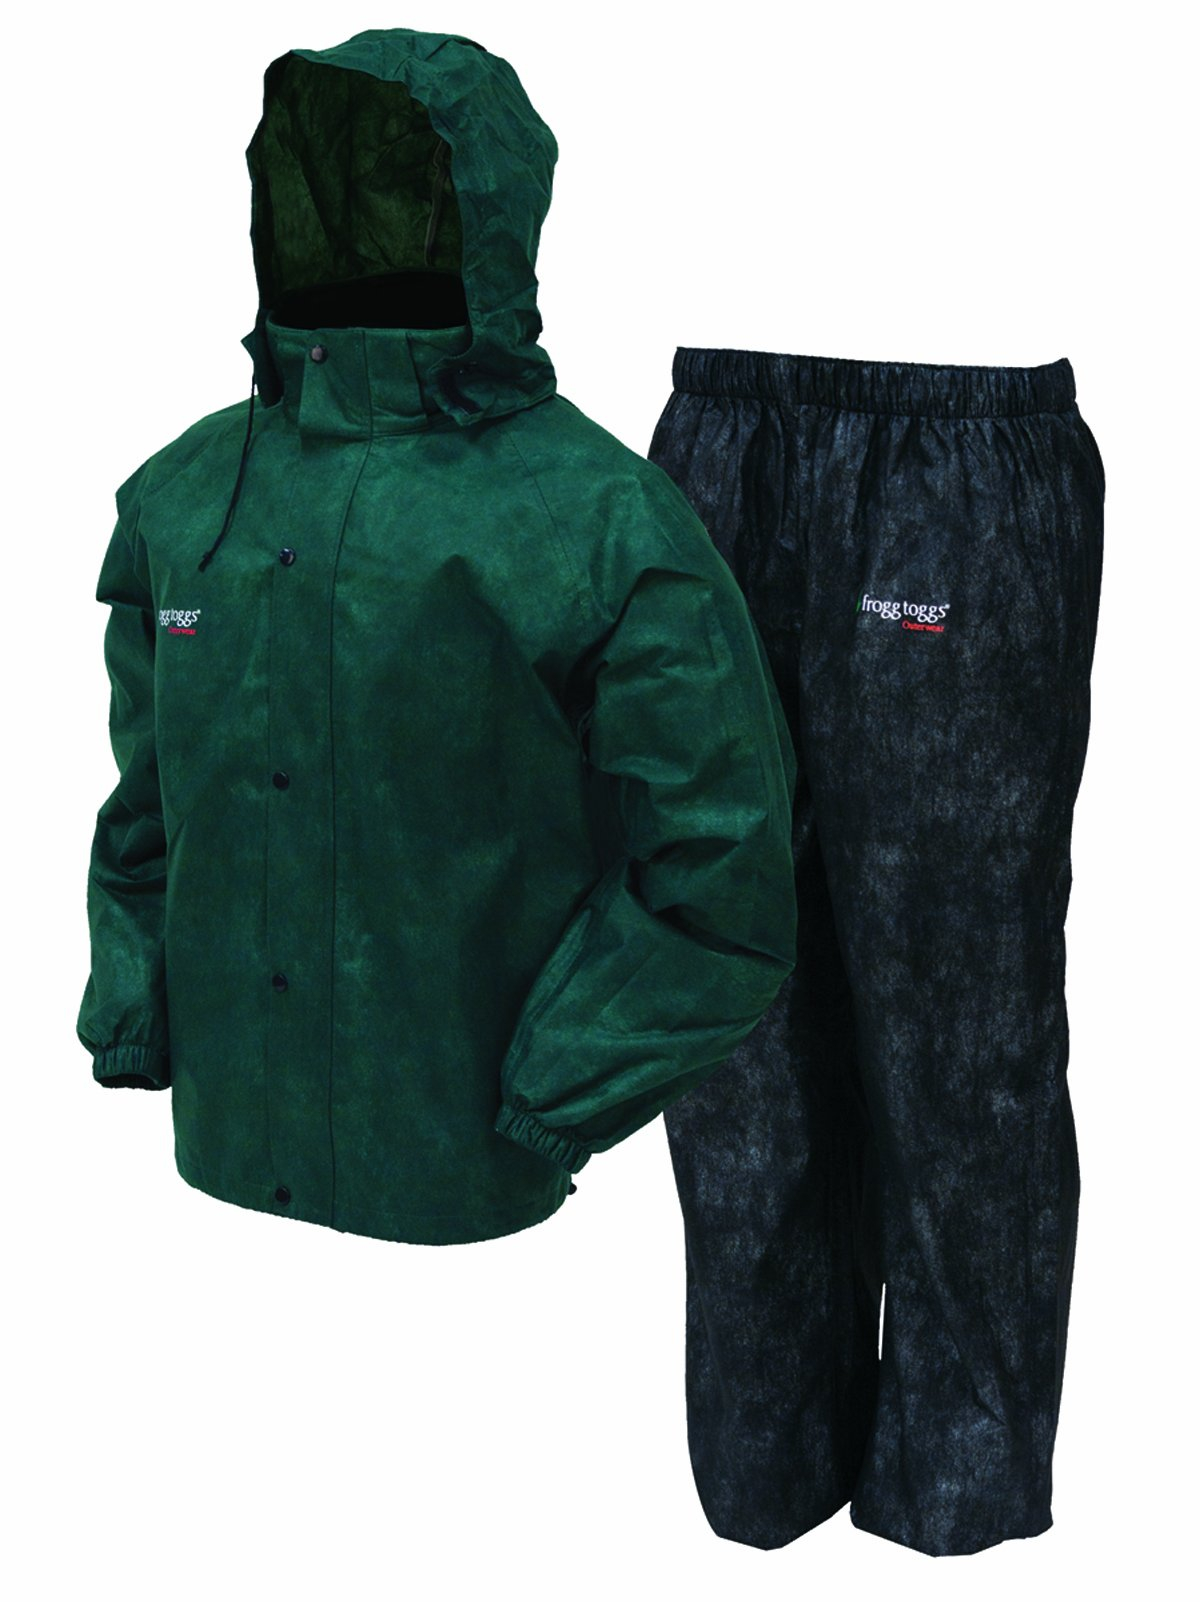 Frogg Toggs AS1310-109MD All Sport Rain Suit, Medium, Green/Black